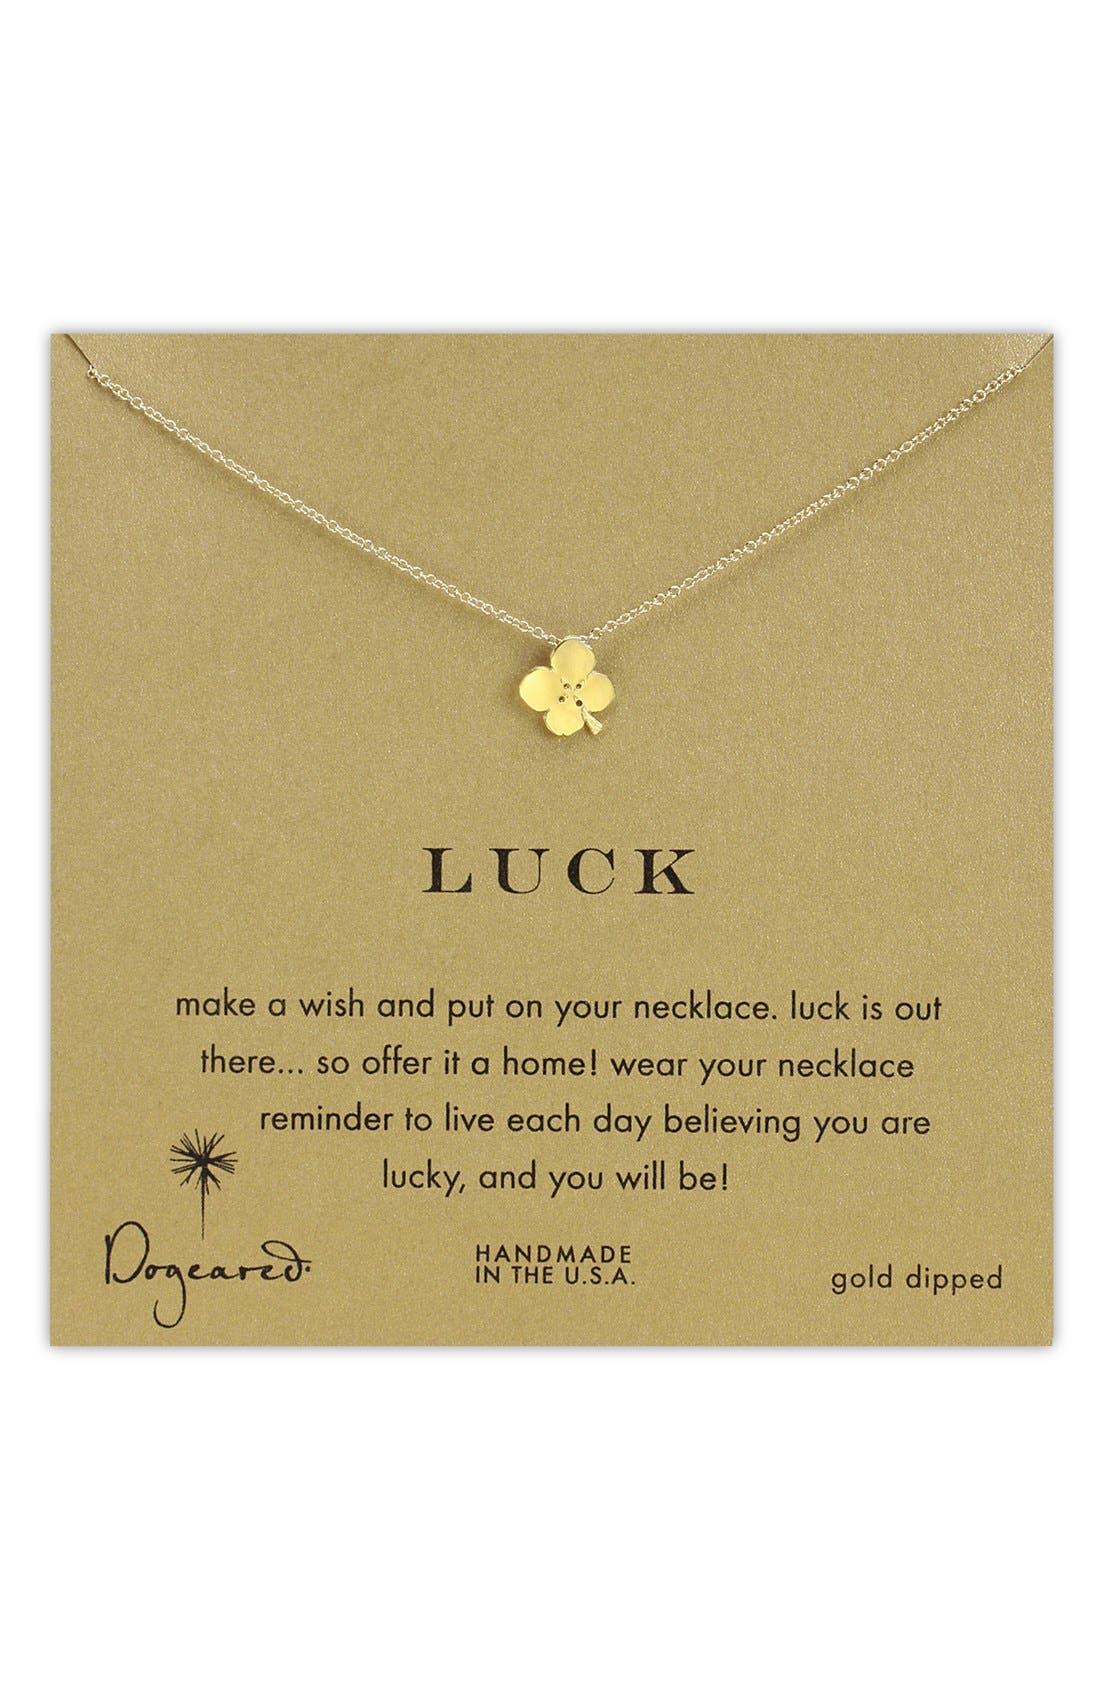 Alternate Image 1 Selected - Dogeared 'Luck' Clover Pendant Necklace